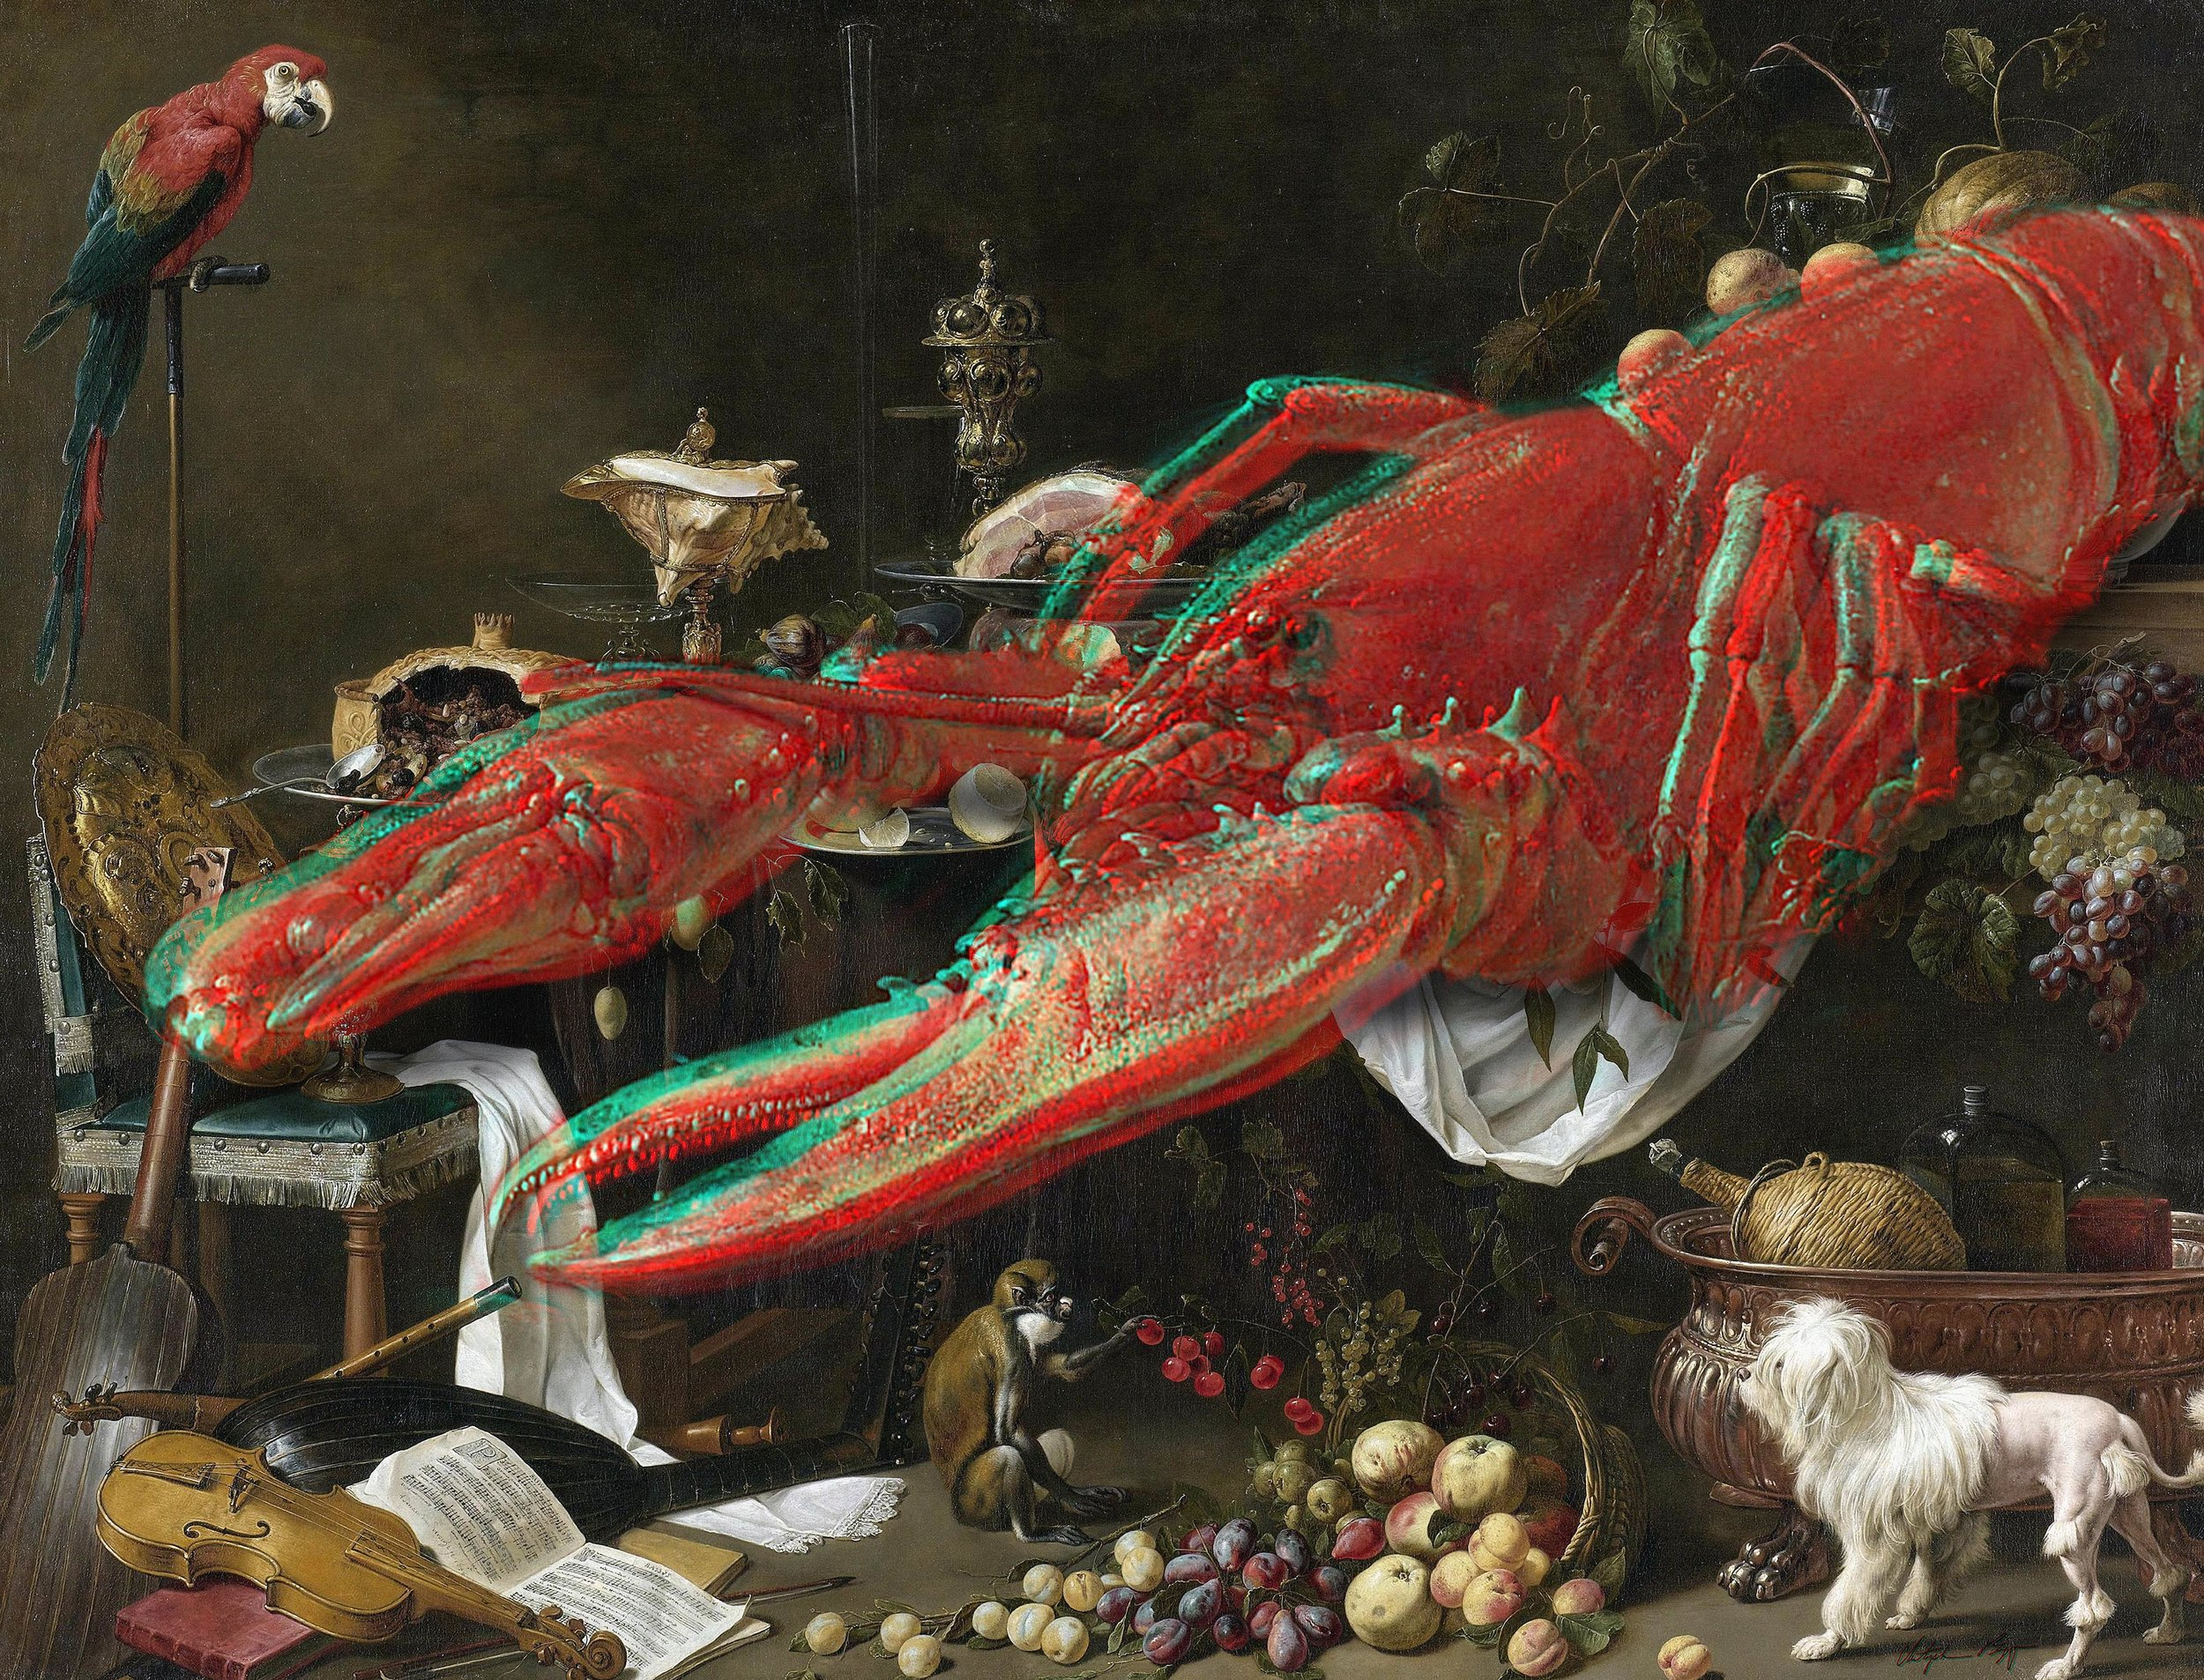 Lobster Anaglyph #1 (Banquet Still Life, Adriaen van Utrecht, 1644)  2017 3D anaglyph digital UV adhesive wall fabric, 3D anaglyph glasses 72.8 X 95.5 inches (small edition 36.4 x 47.75 inches)